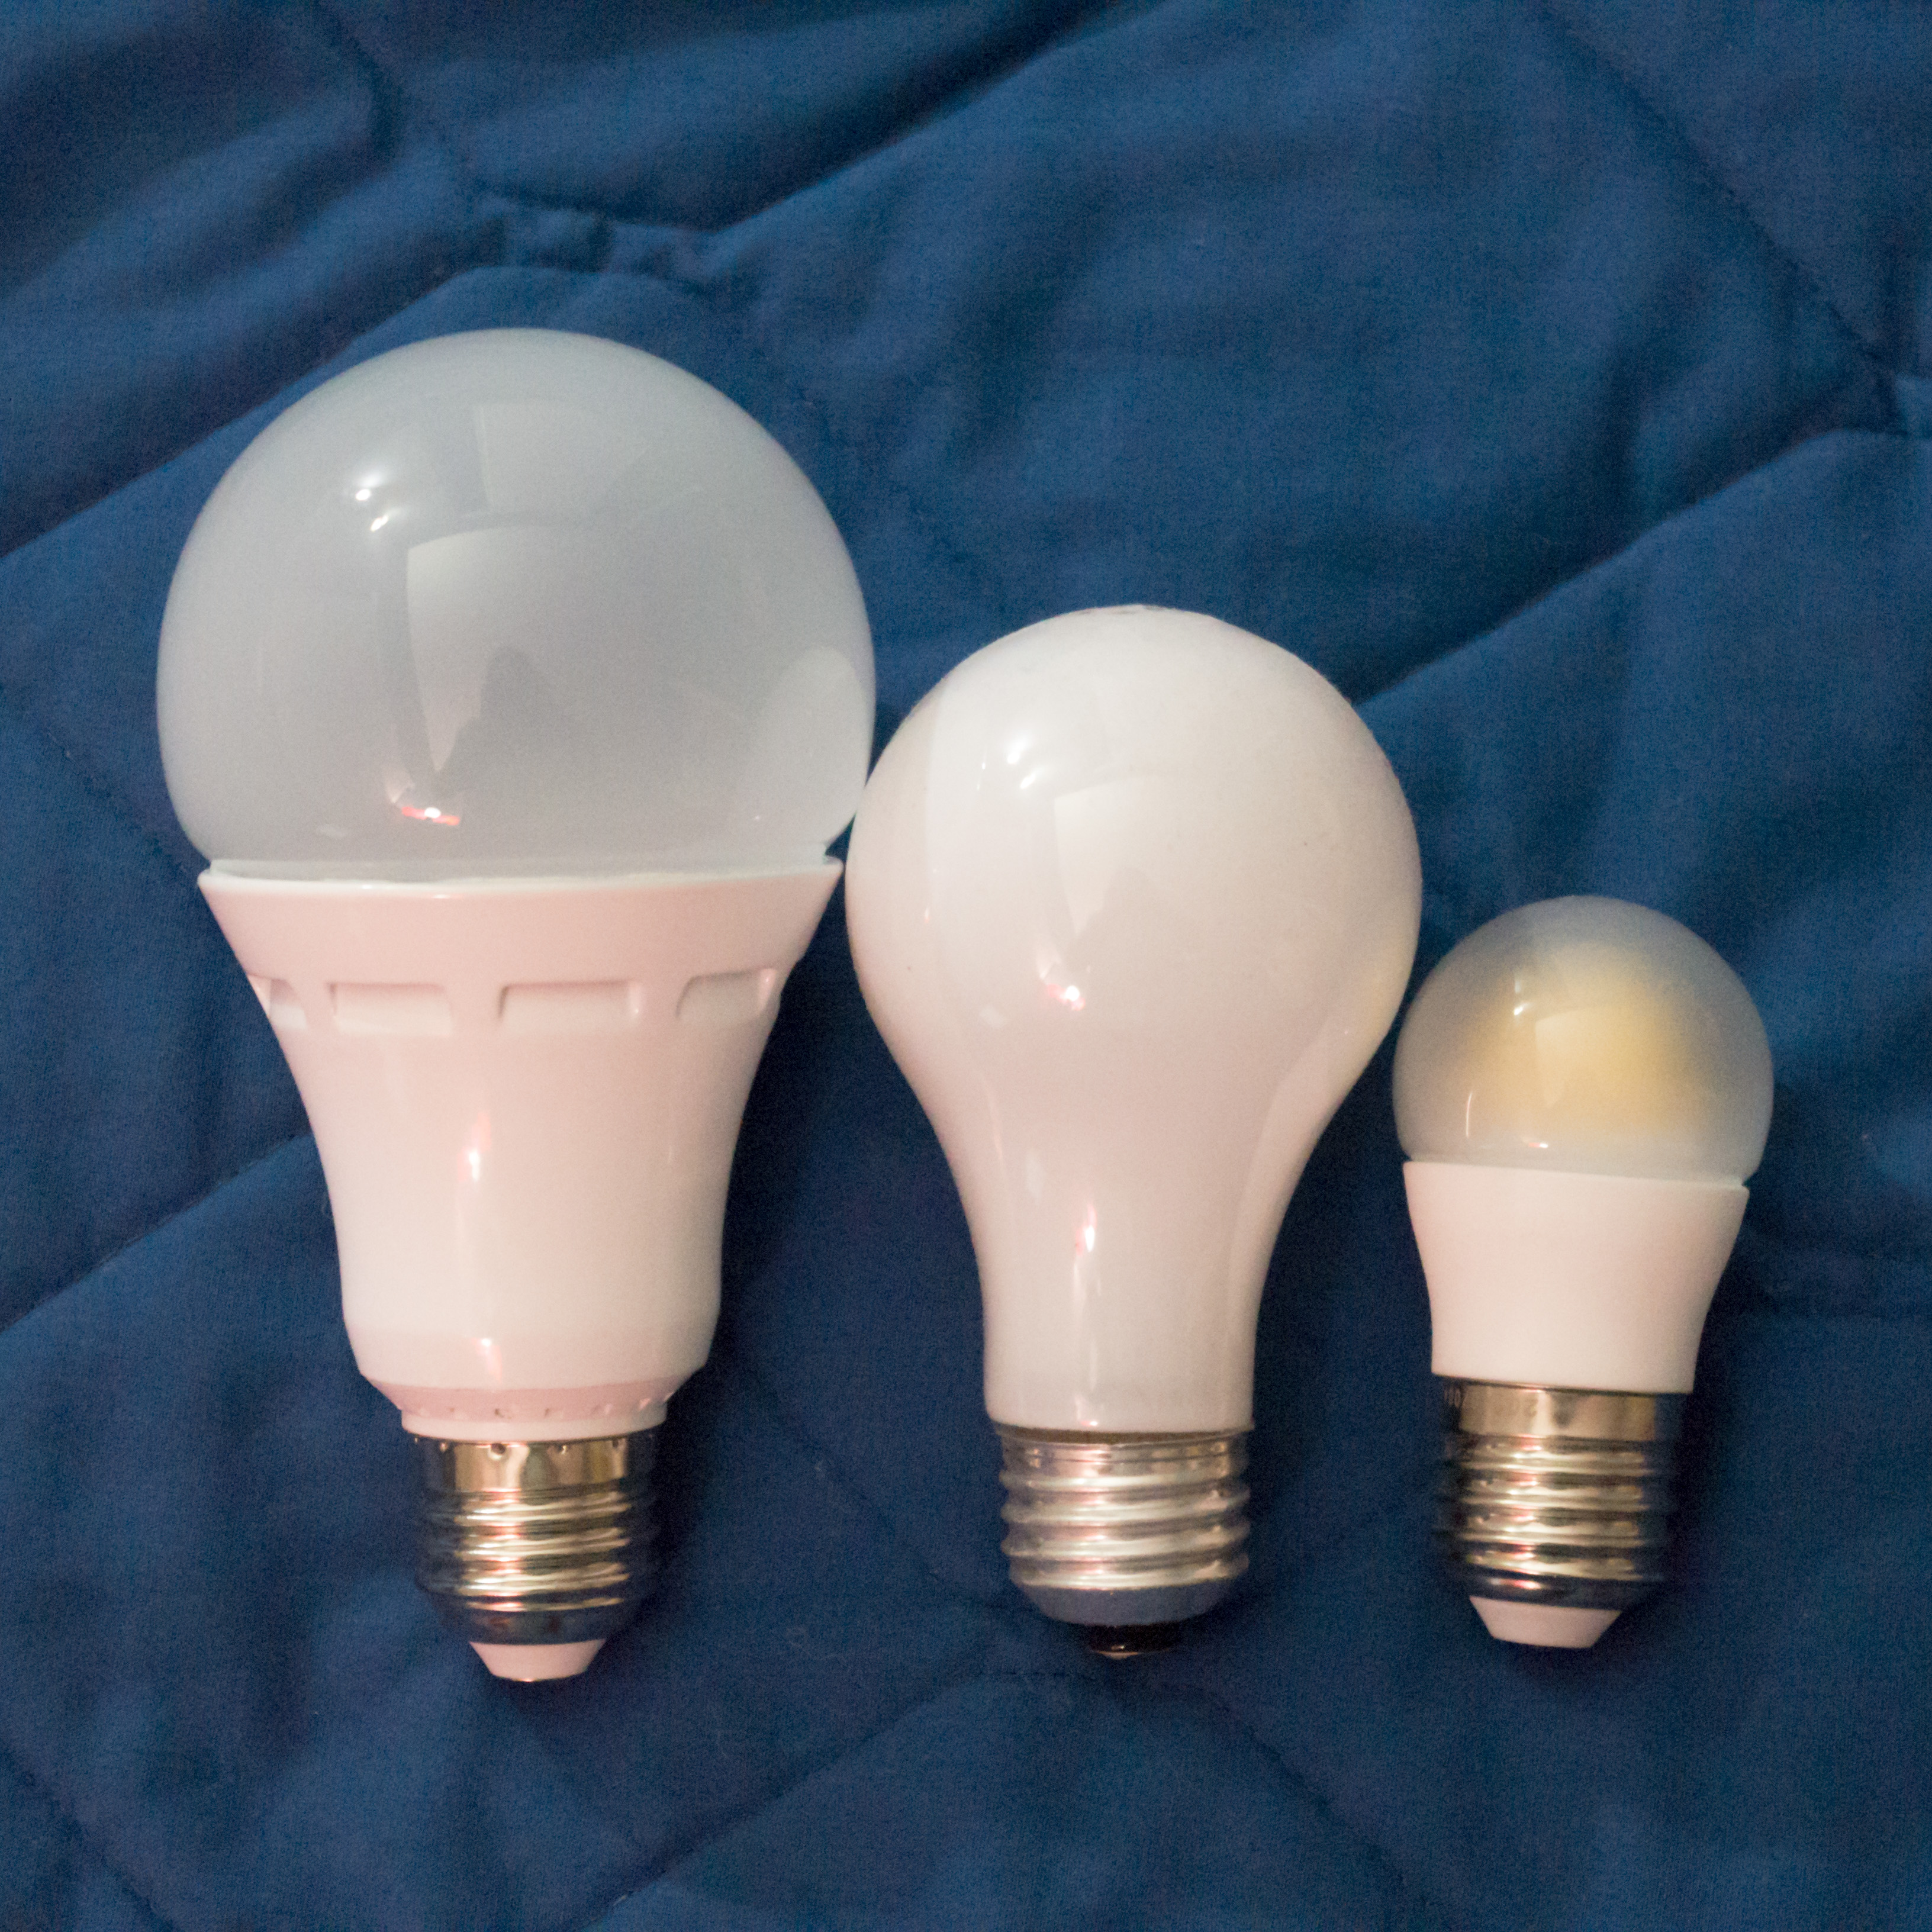 three light bulbs in descending order of size